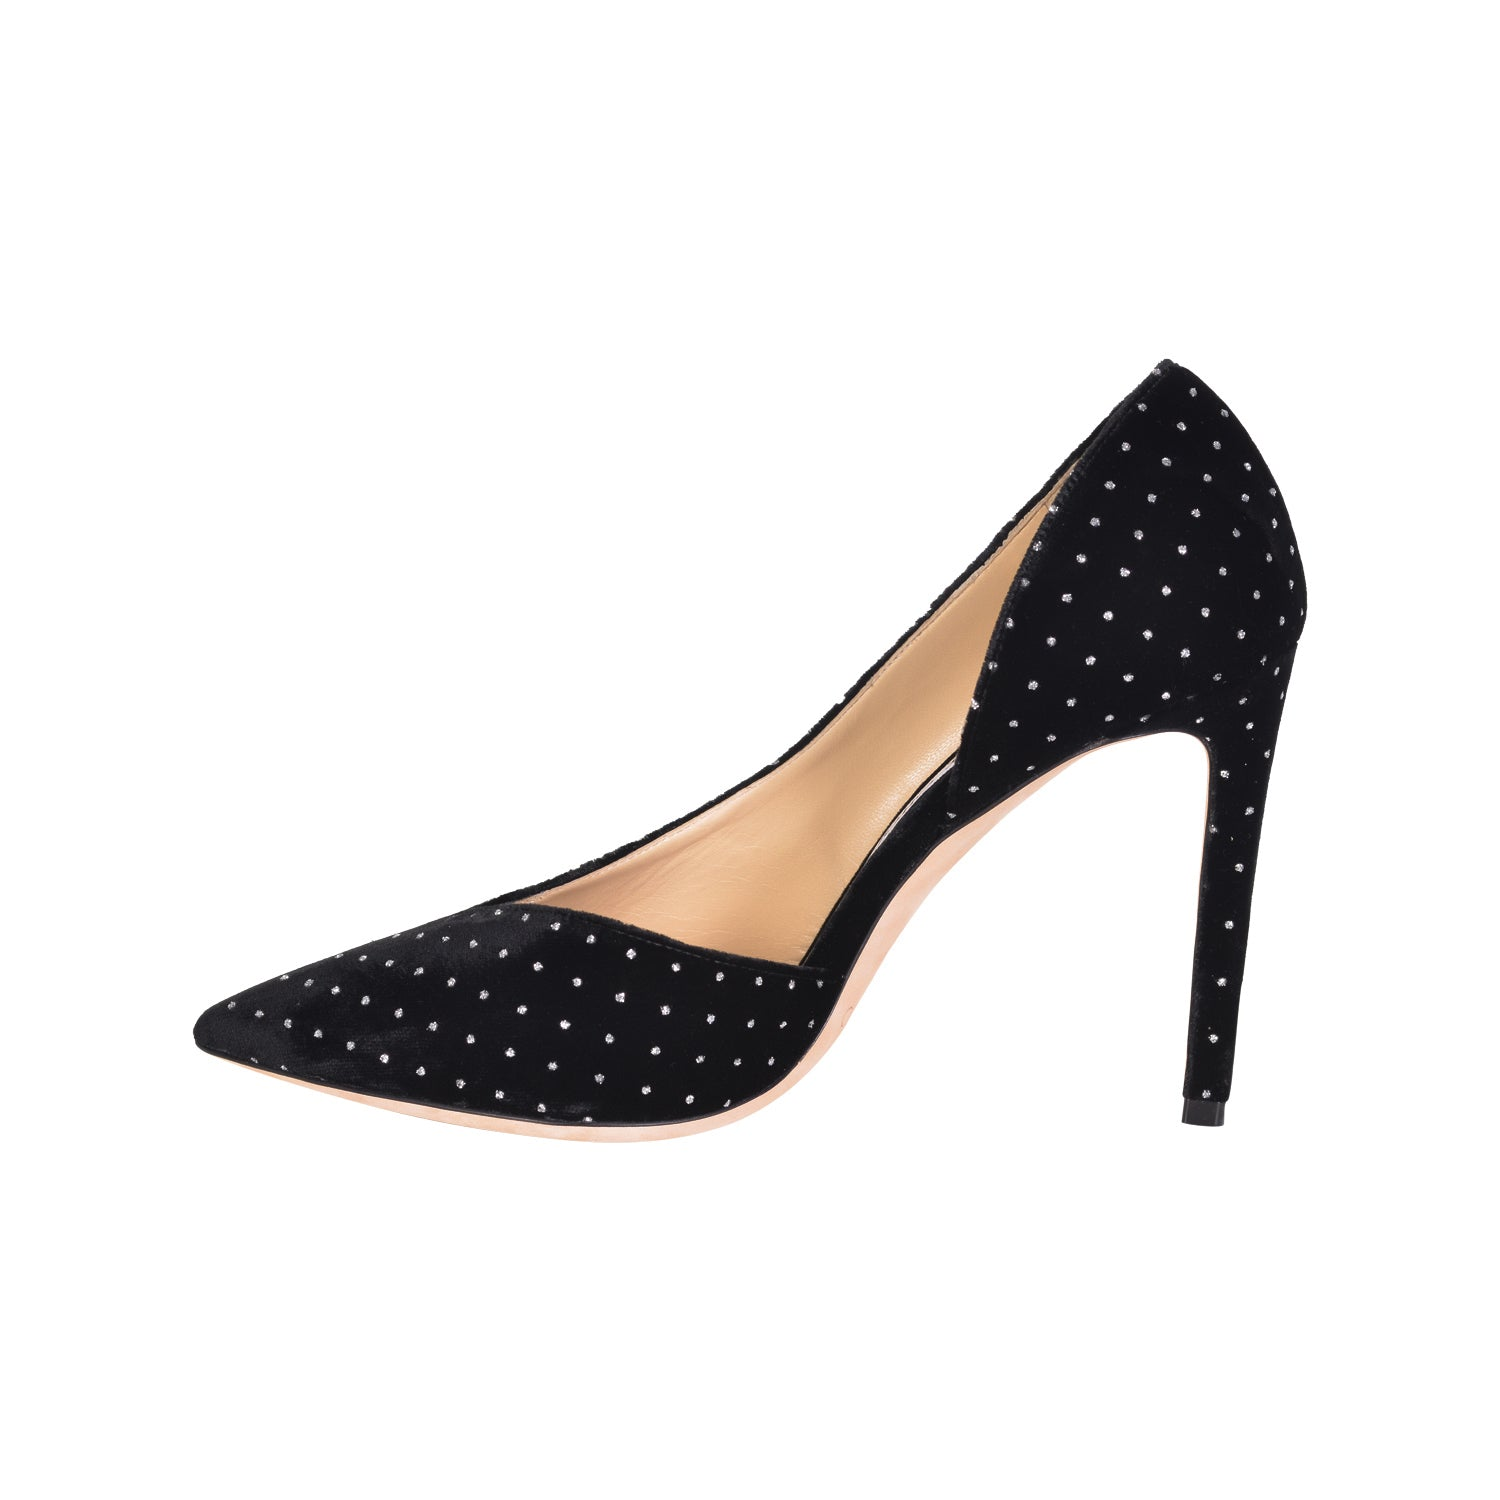 JIMMY CHOO Black Sophia 100 Velvet Crystal Pumps